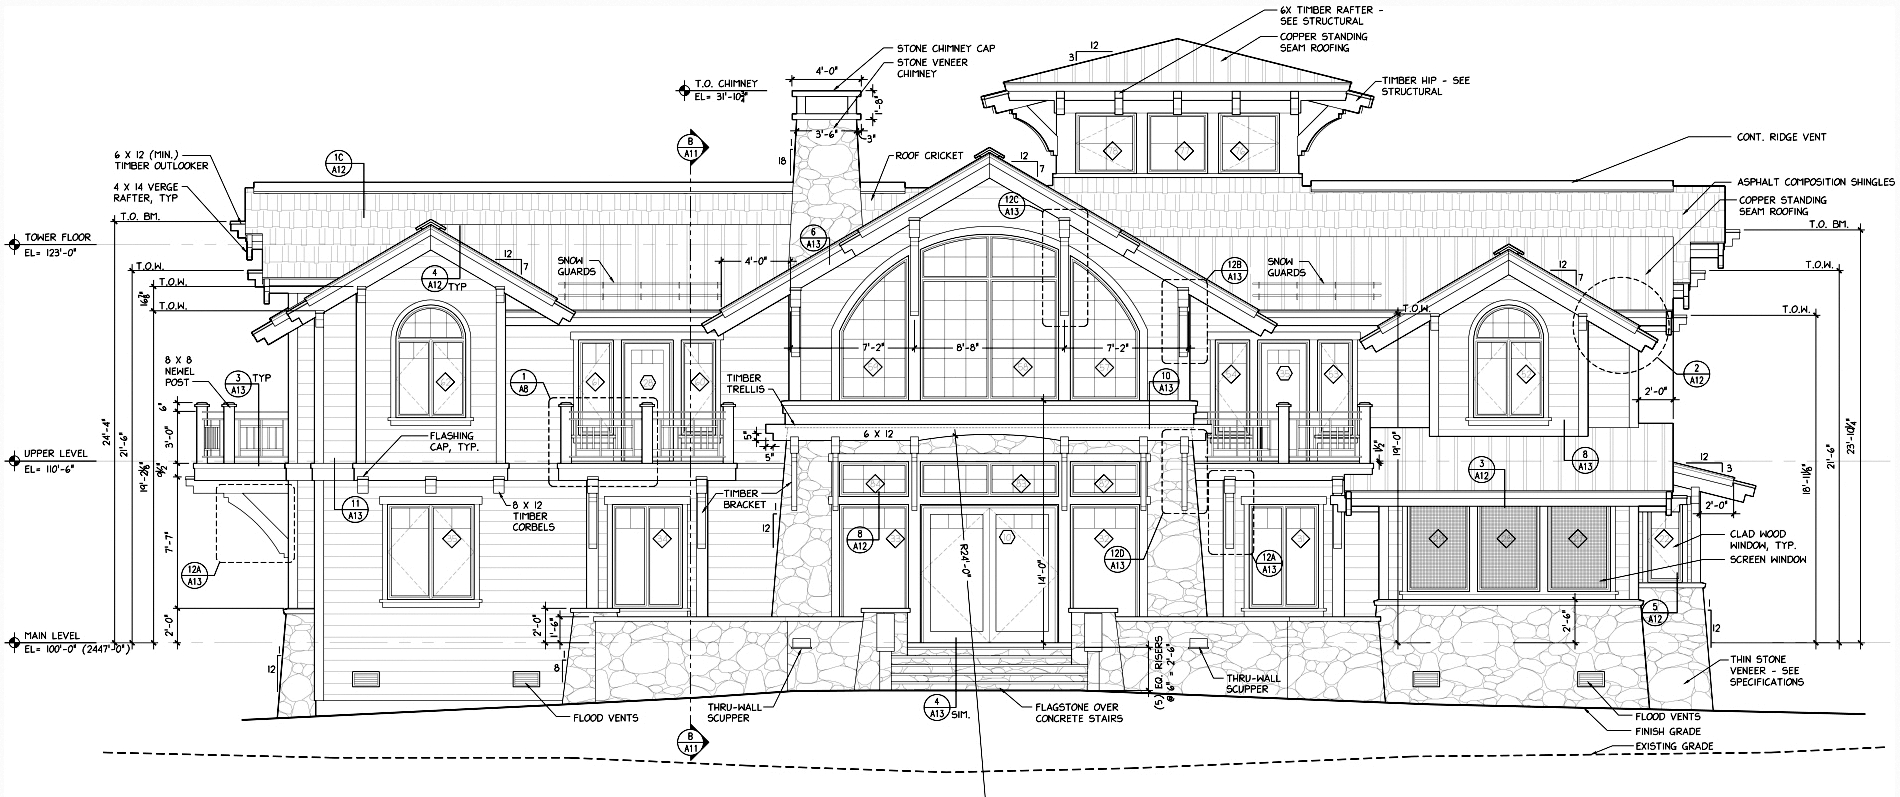 Architects mountain architects hendricks architecture idaho for Construction plan drawing